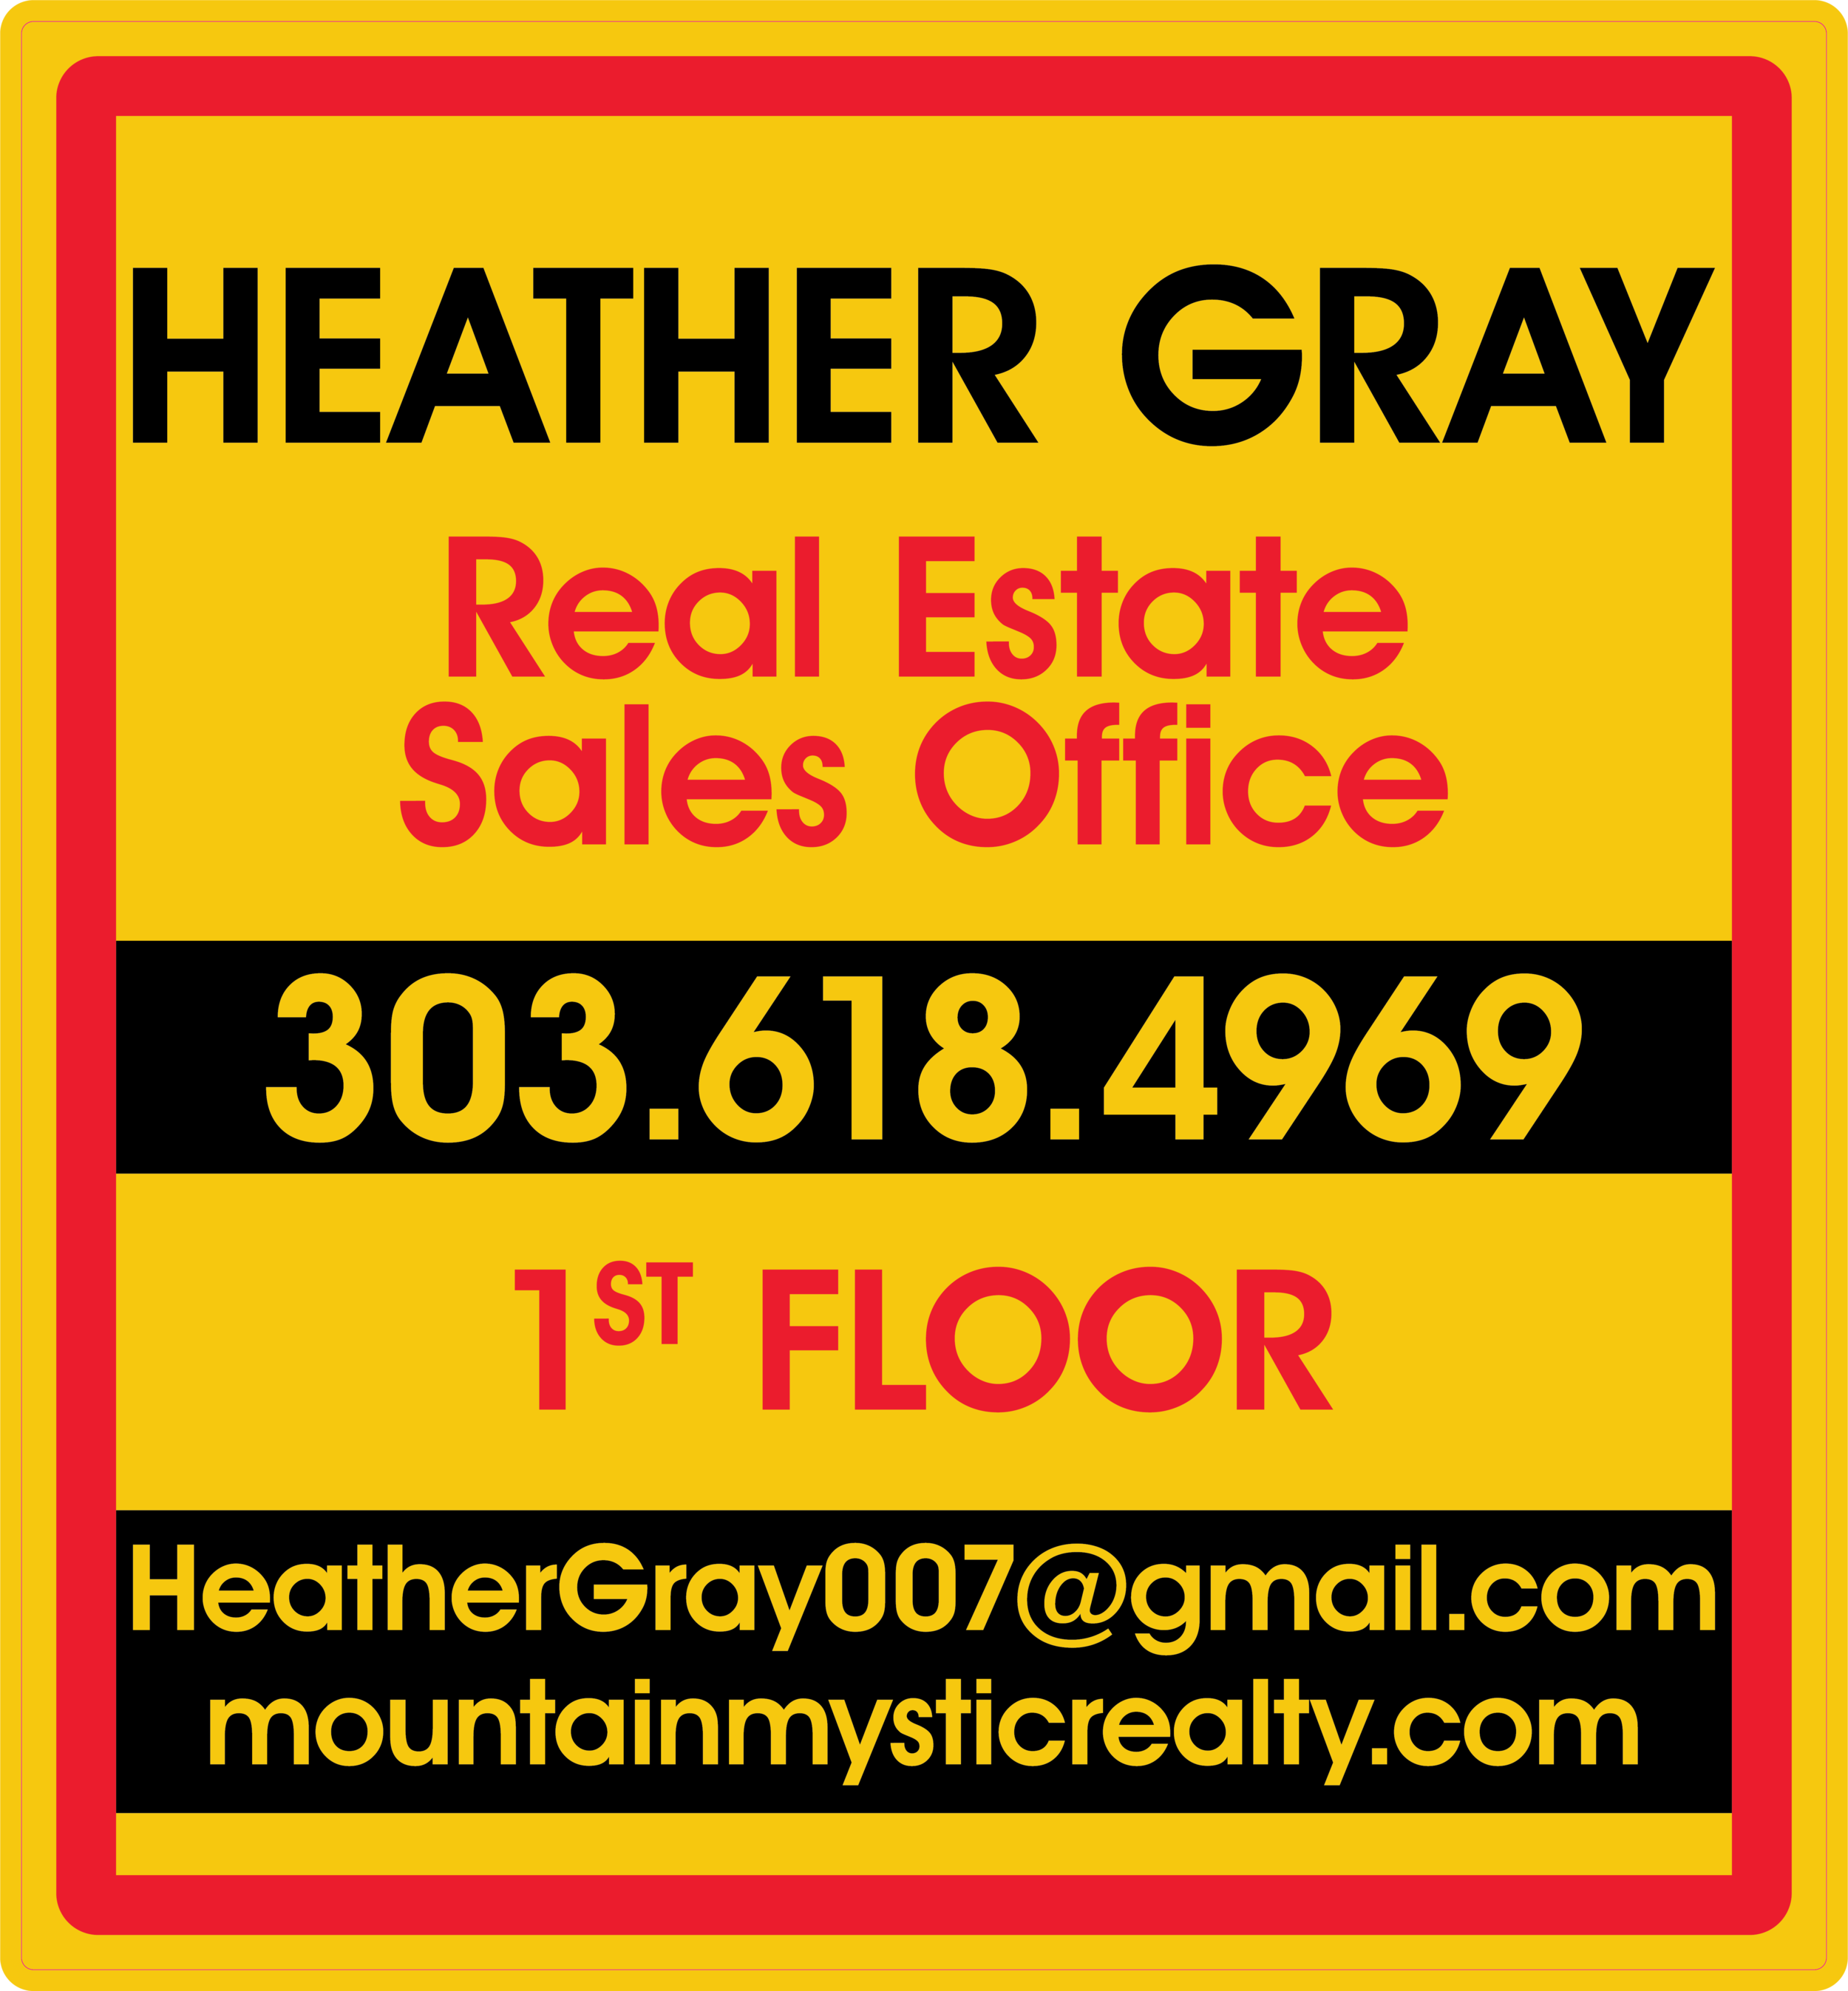 Heather Gray MMRE 41x38 REALTOR SIGN Rev3 Proof 05-13-19-01.png